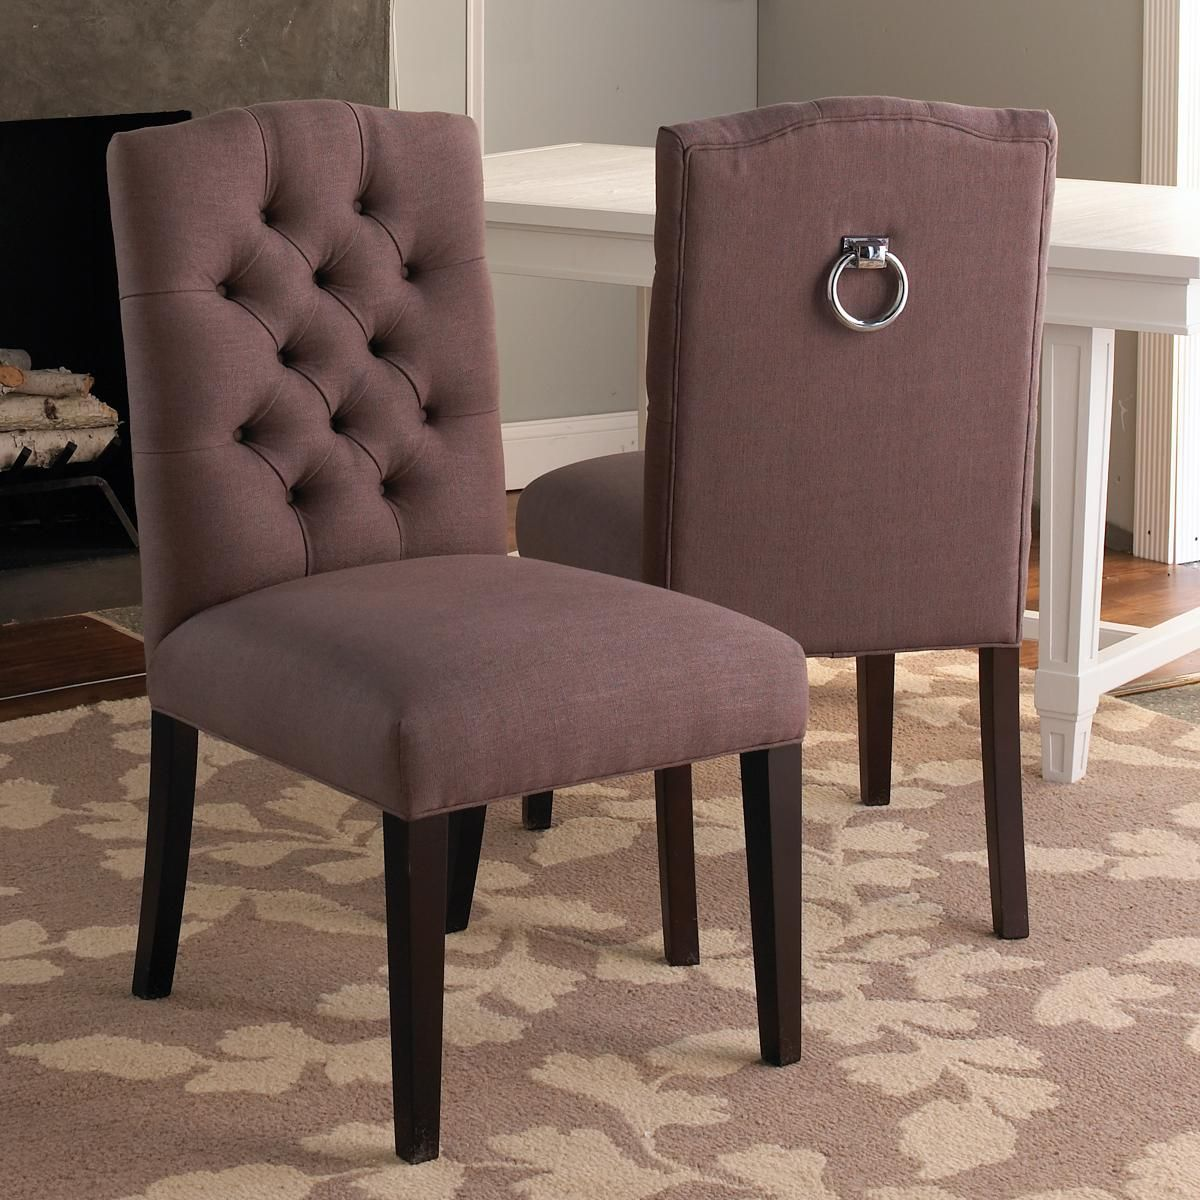 Tufted Back Dining Chair W/Silver Ring